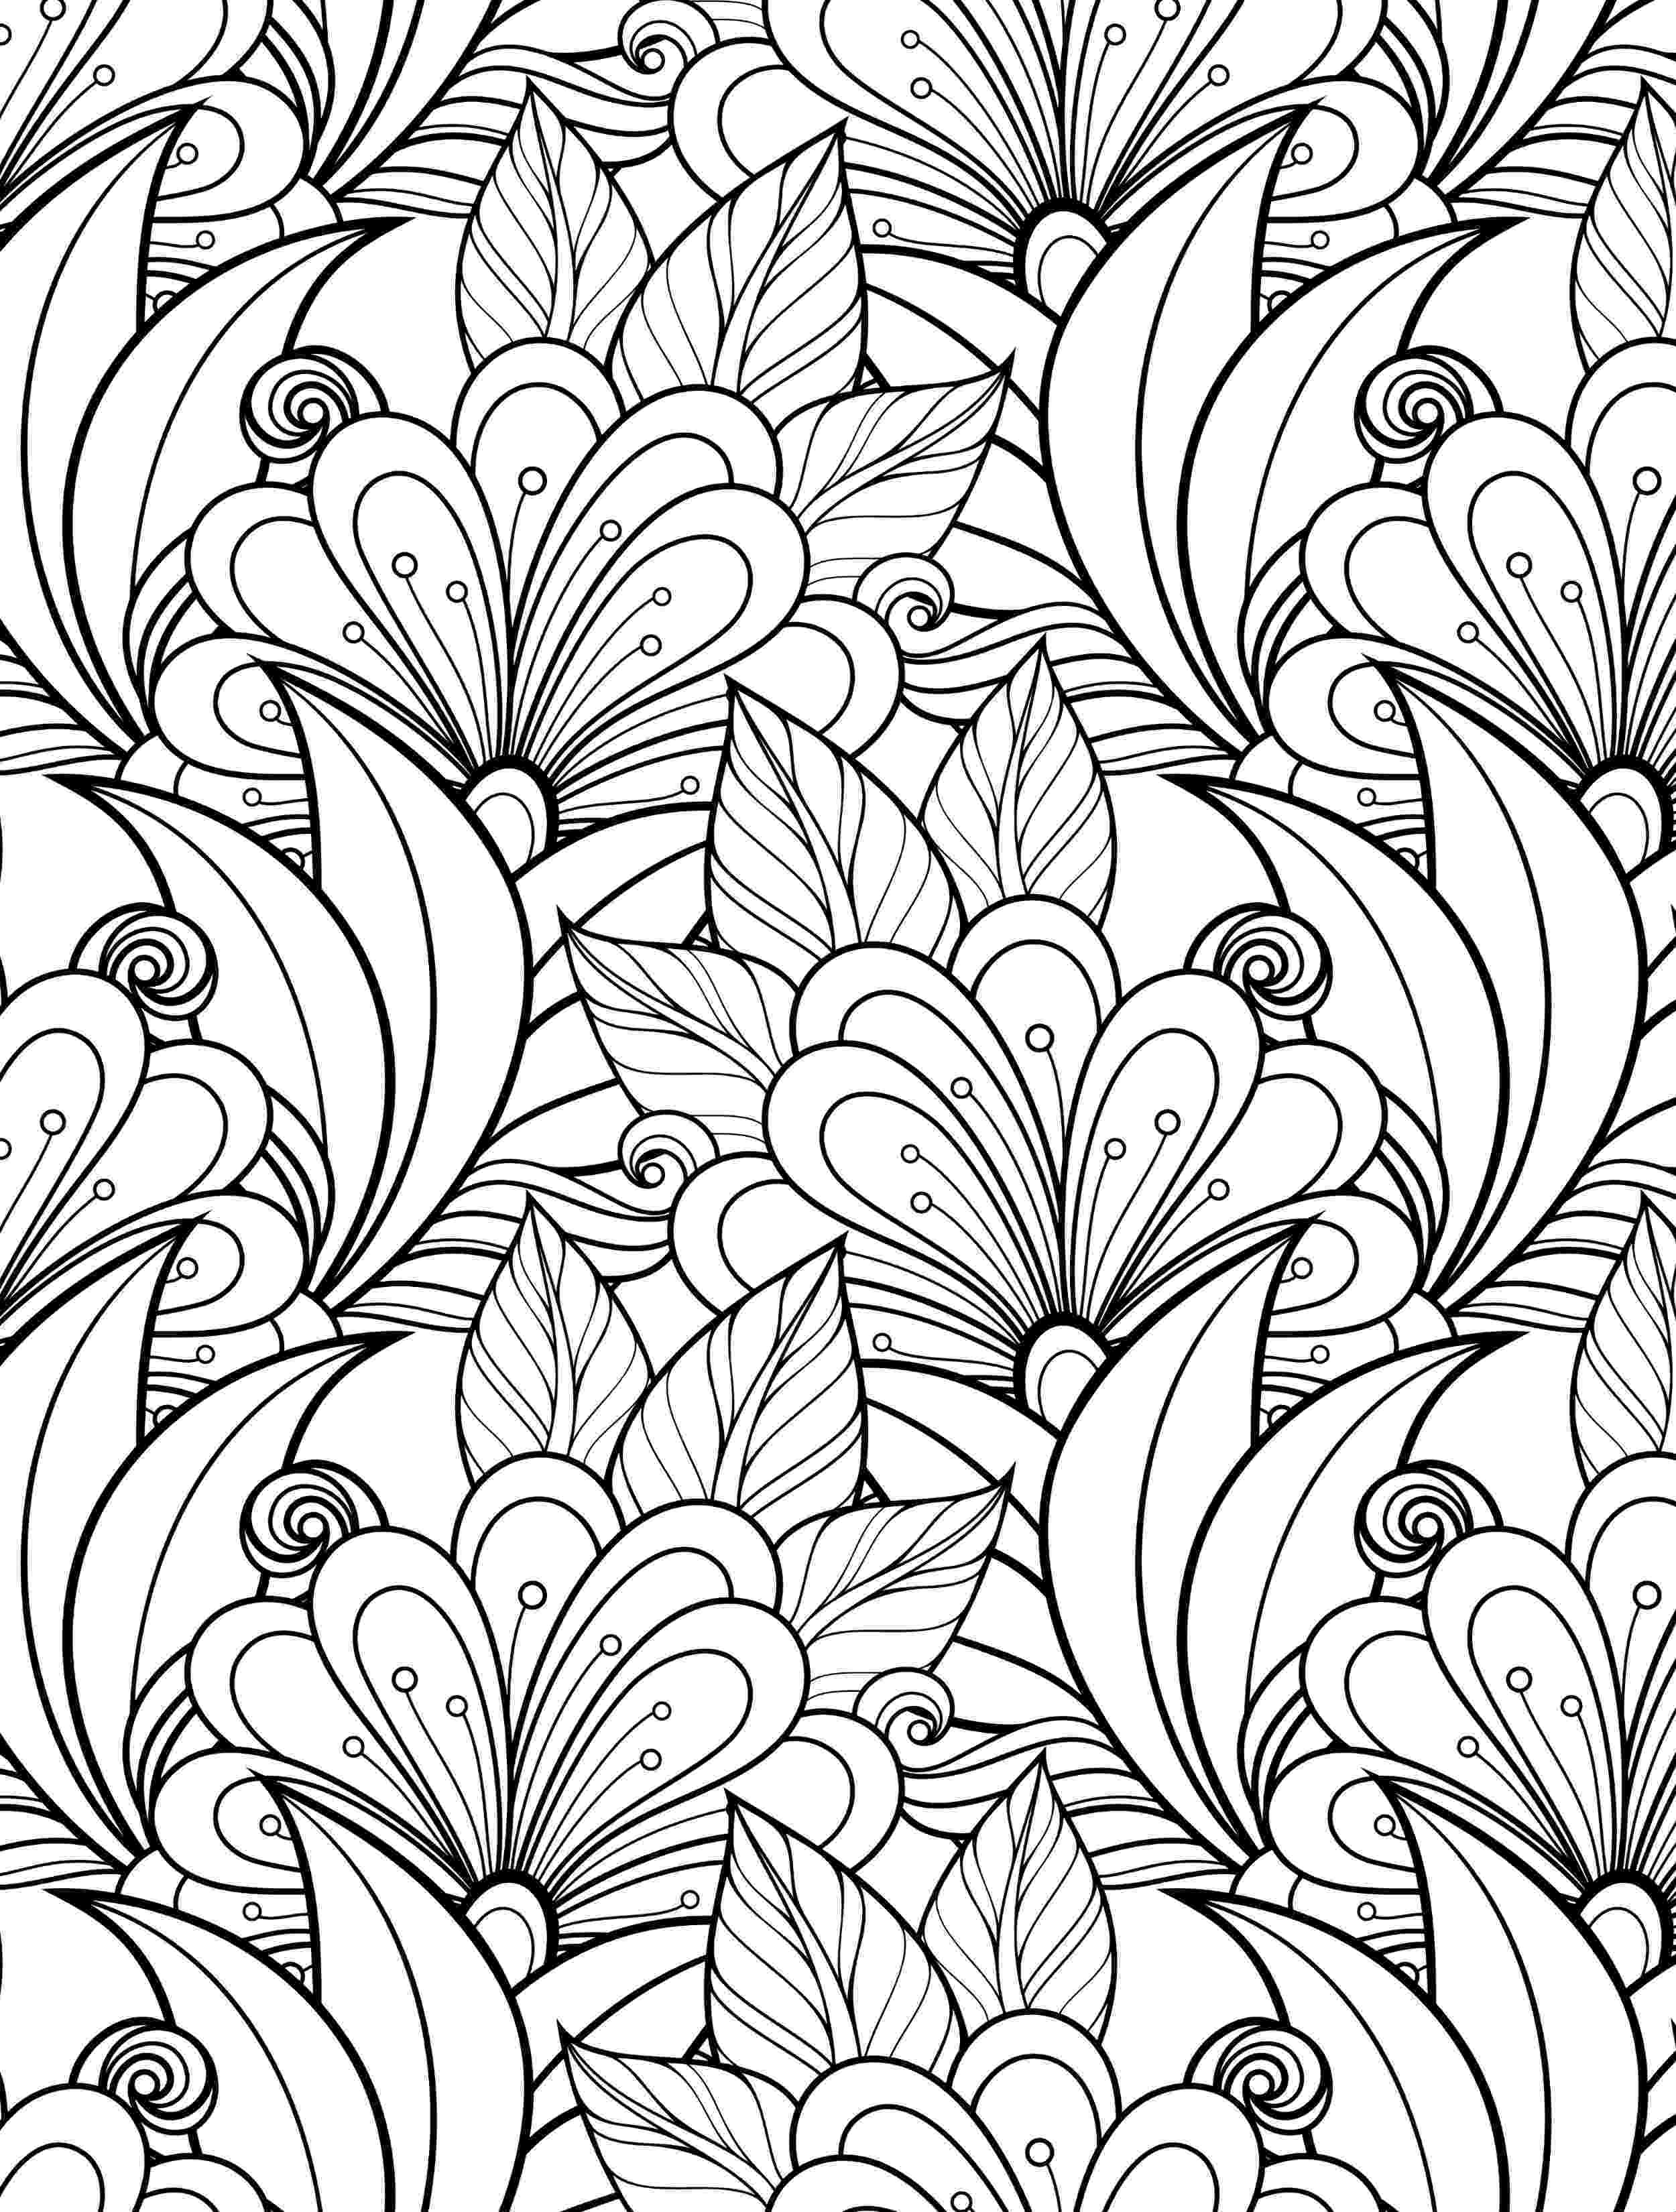 coloring pages for adults to print flowers four big flowers flowers adult coloring pages pages to for coloring adults print flowers